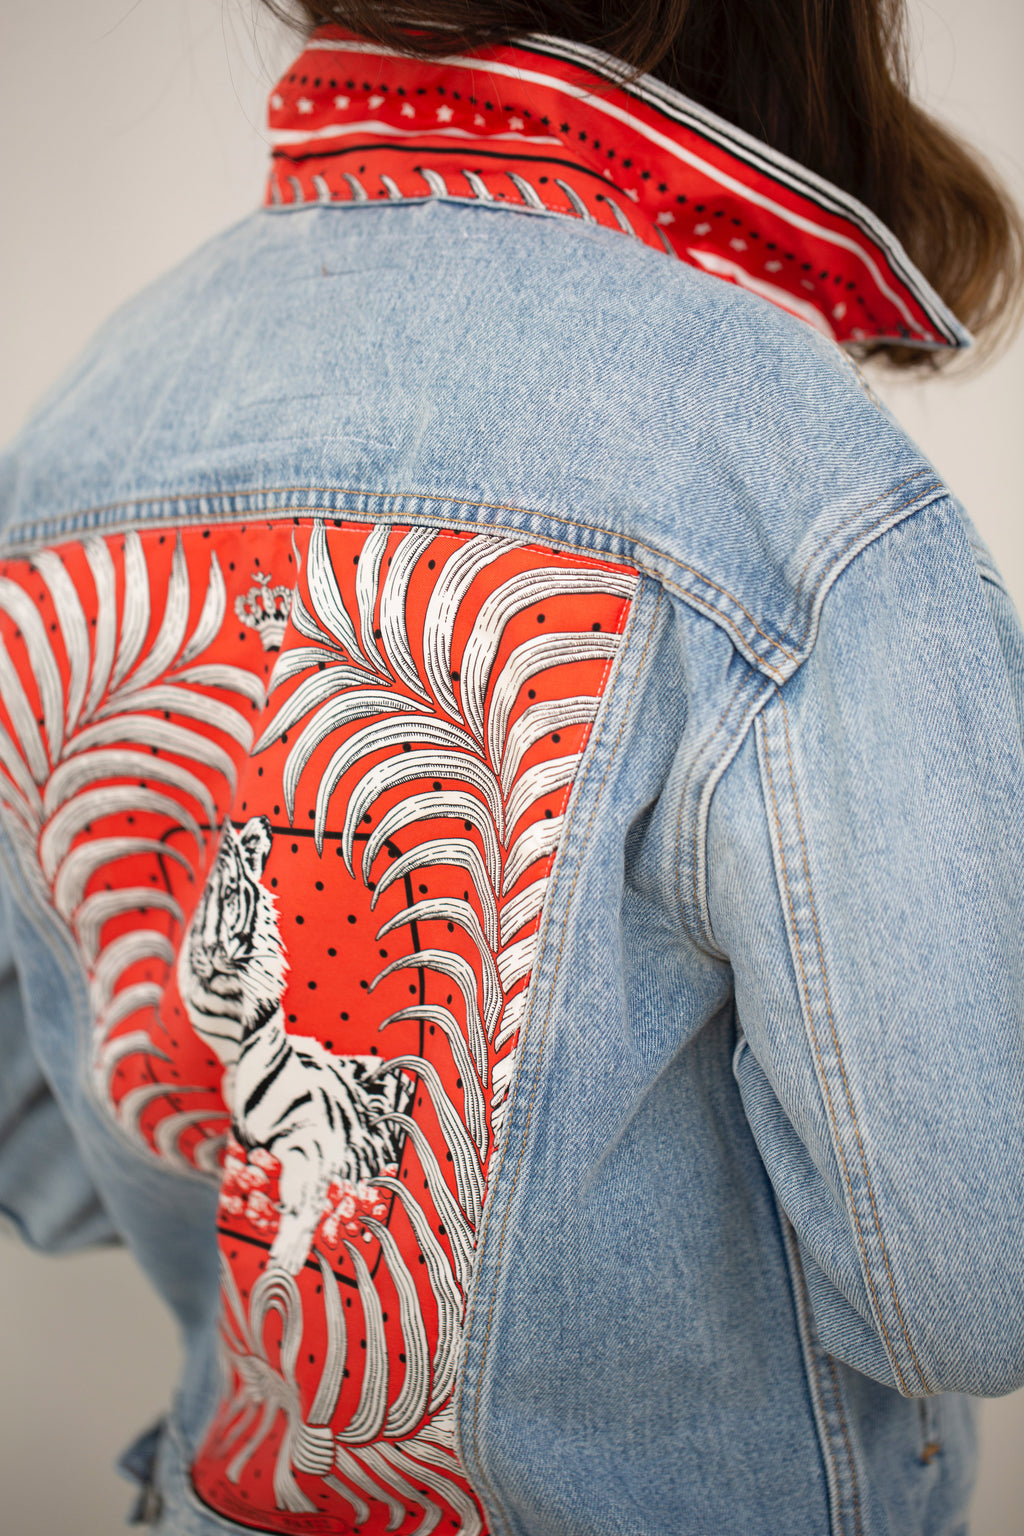 HERMES RED TIGER SCARF DENIM JACKET